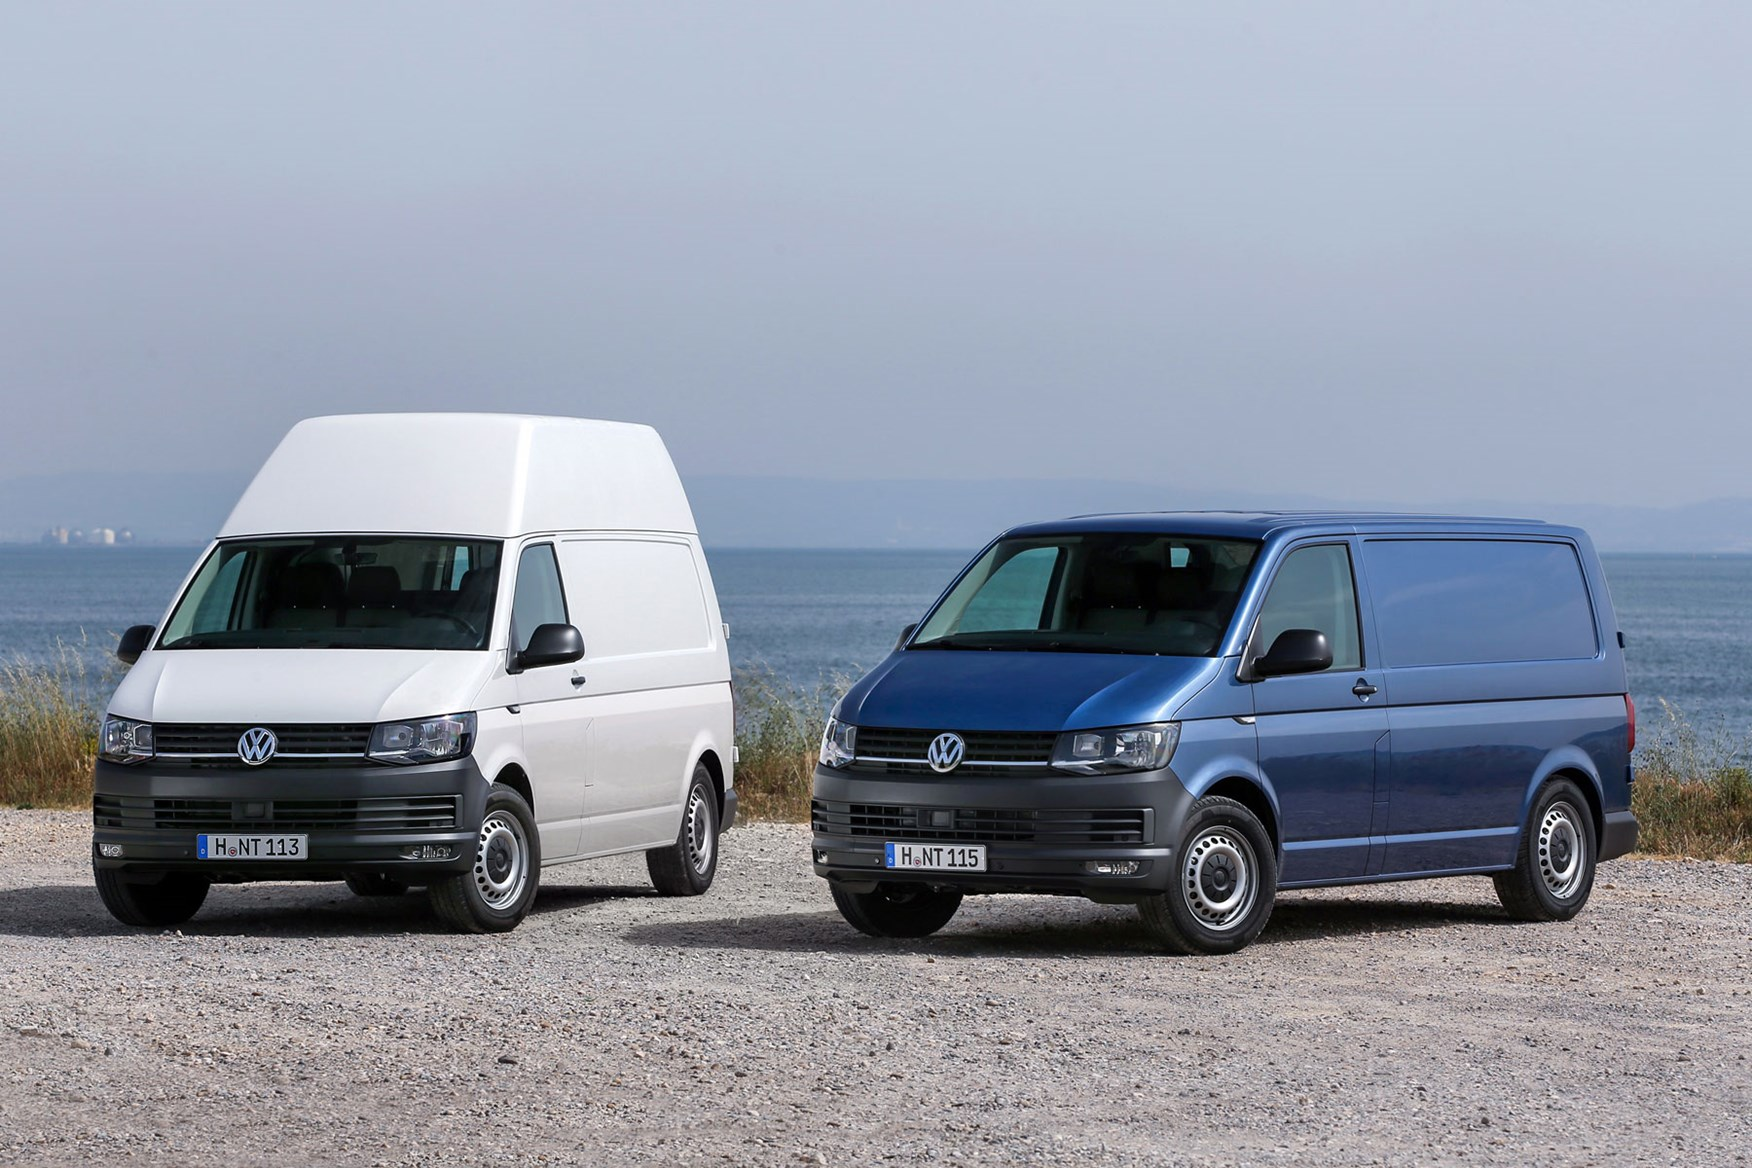 VW Transporter T6 Low and High roof options